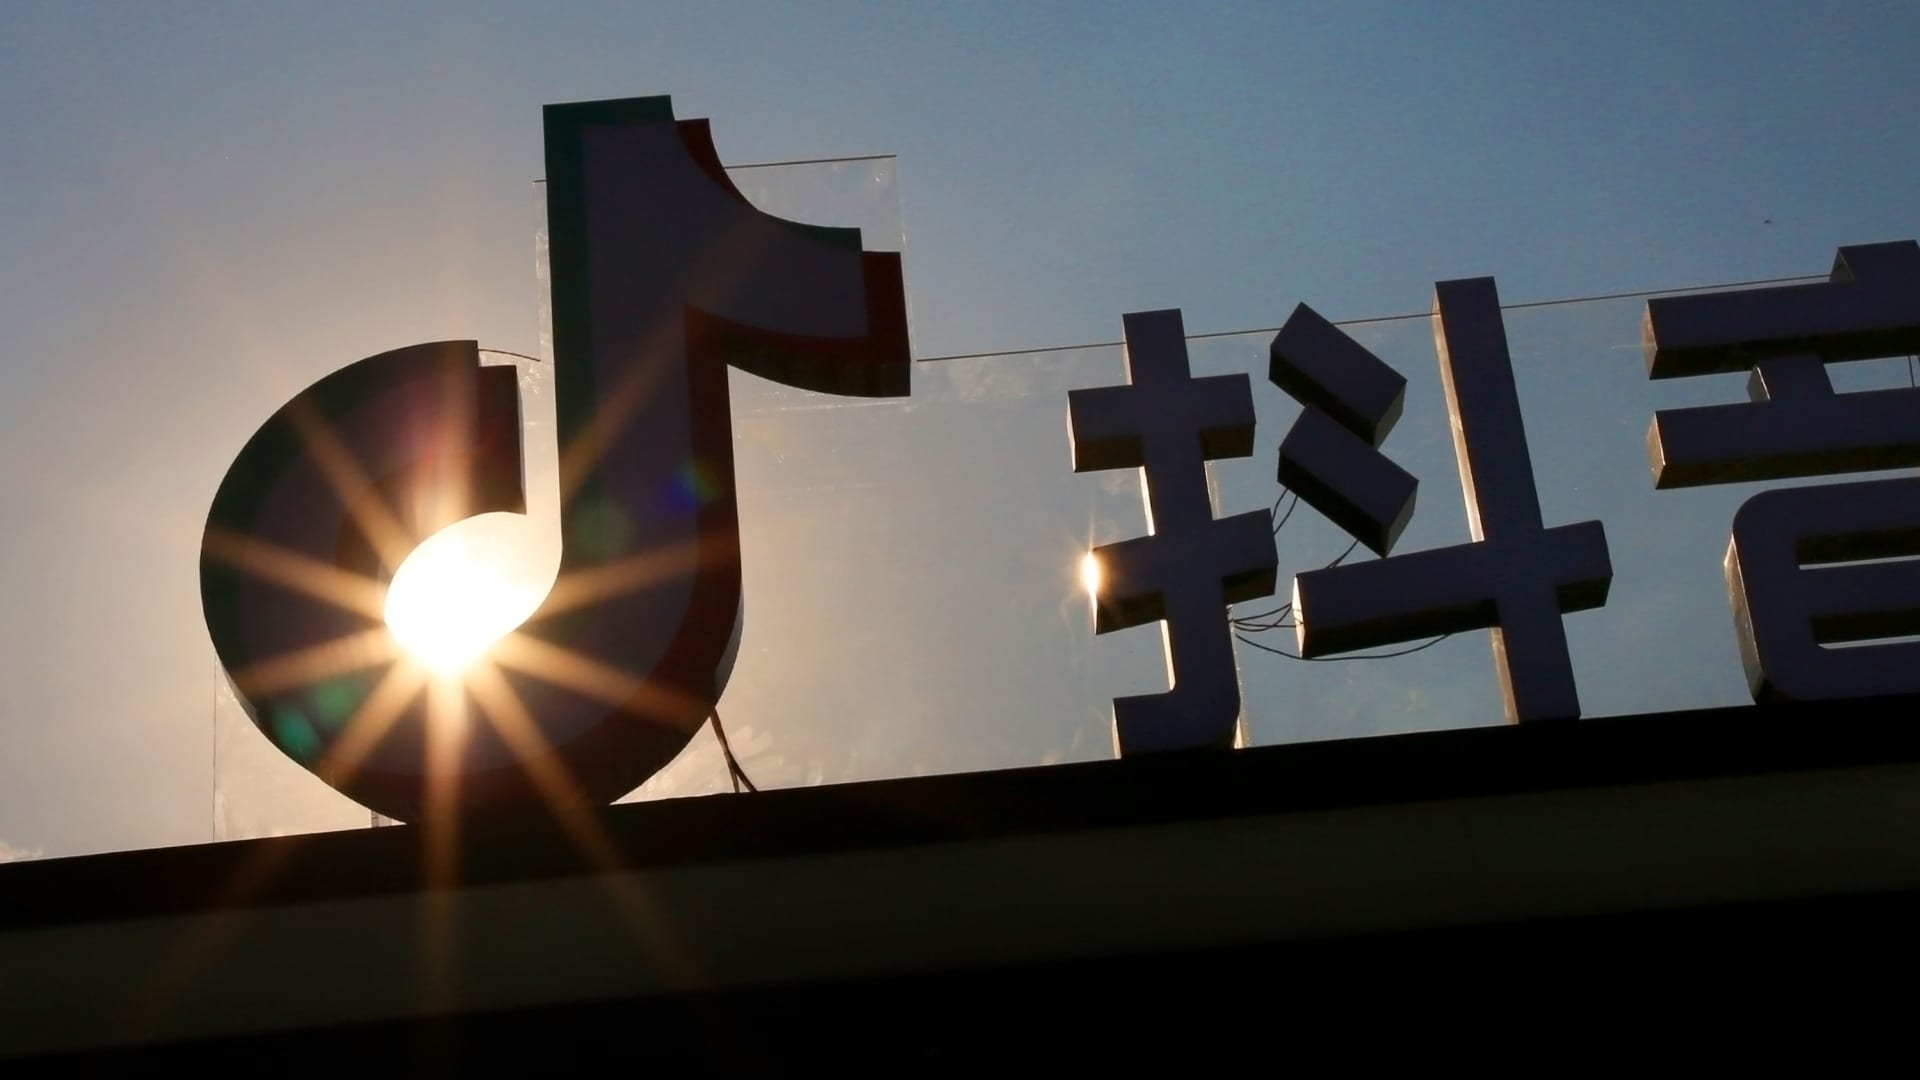 A symbol of TikTok (Douyin) is pictured at The Place shopping mall at dusk on August 22, 2020 in Beijing, China.